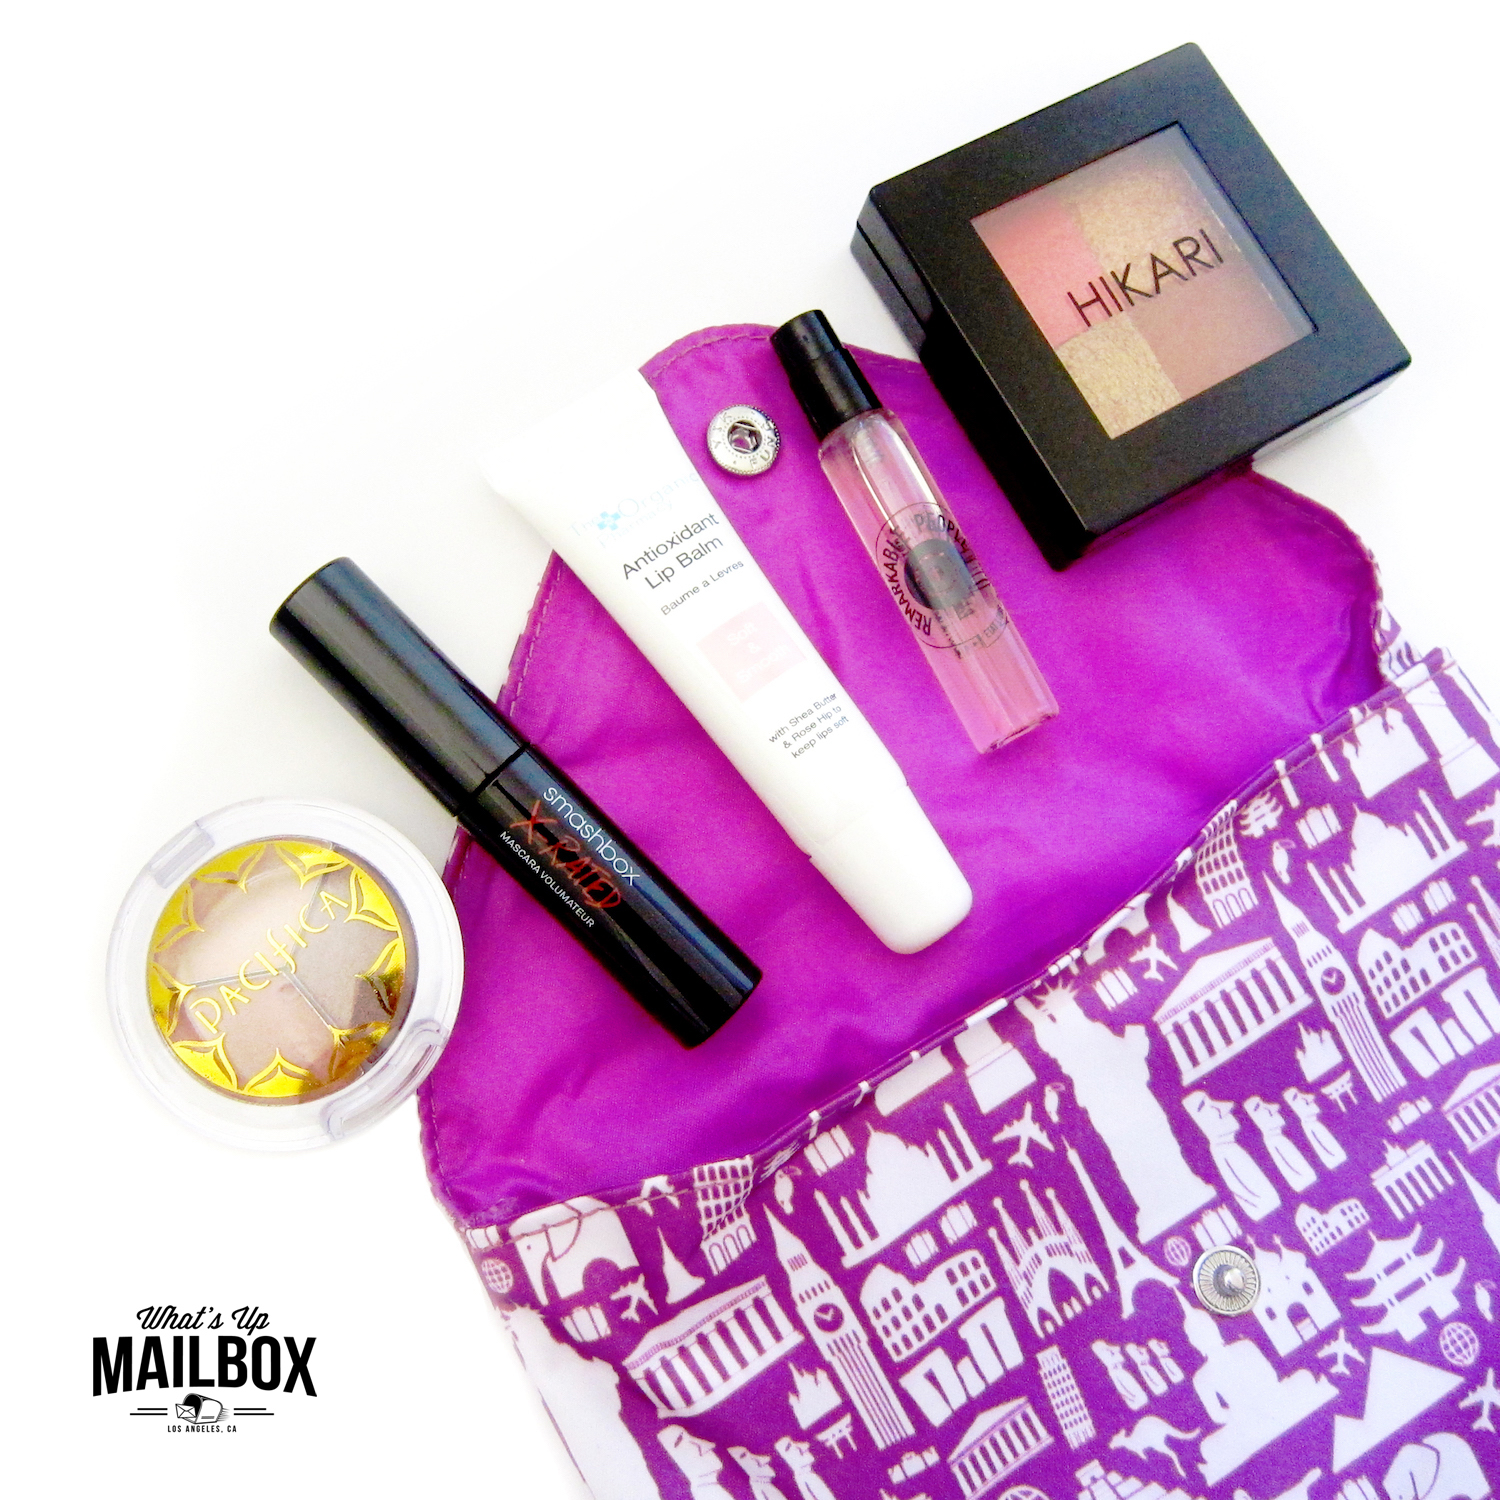 My Ipsy May 2016 Glam Bag Items!